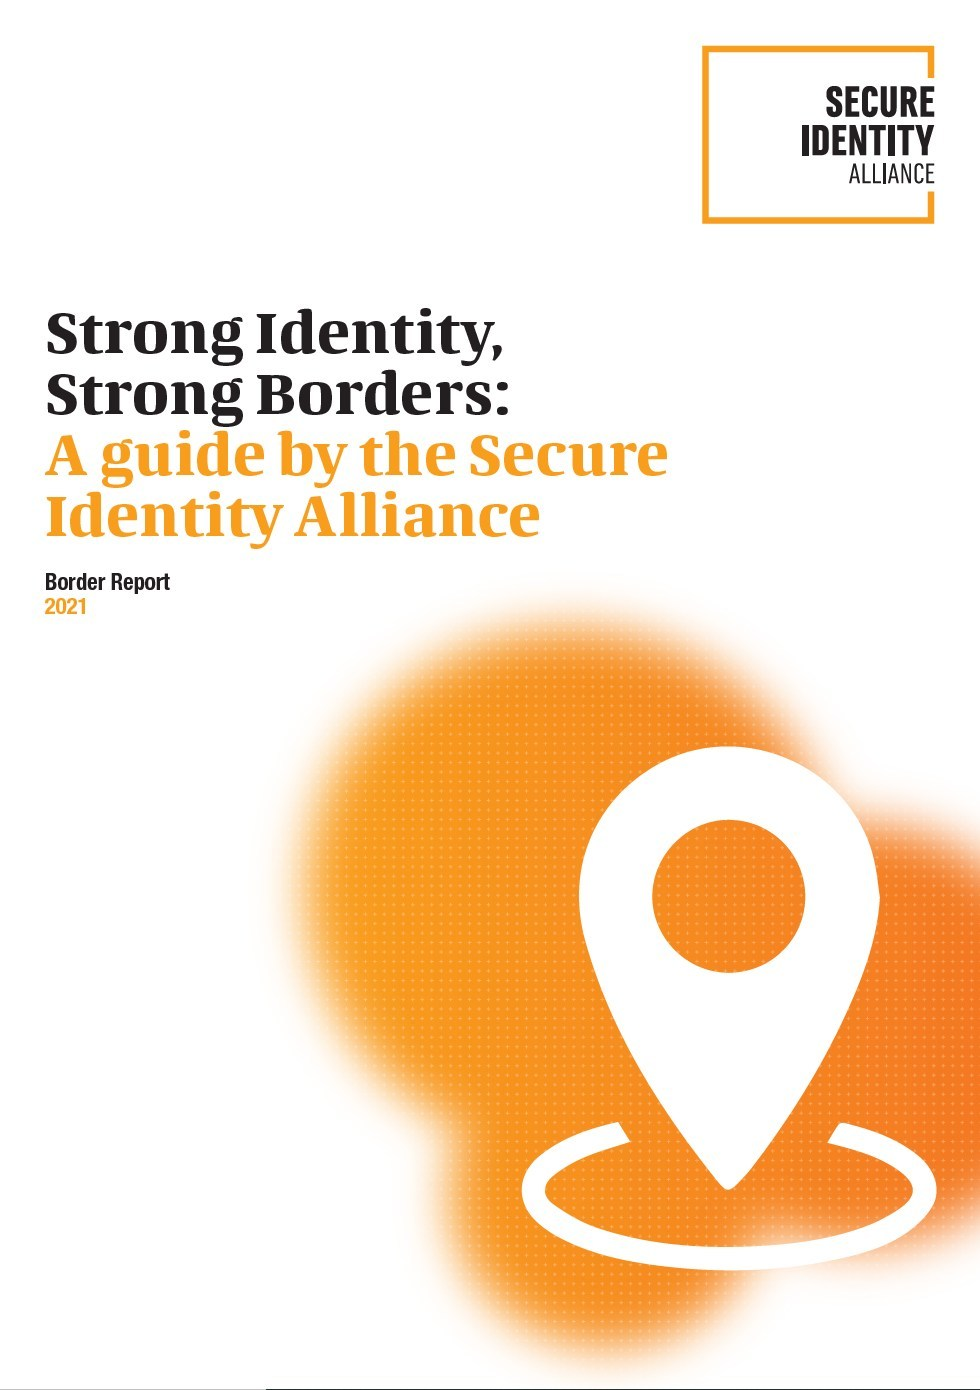 Secure Identity Alliance highlights the changing face of identity management in new report